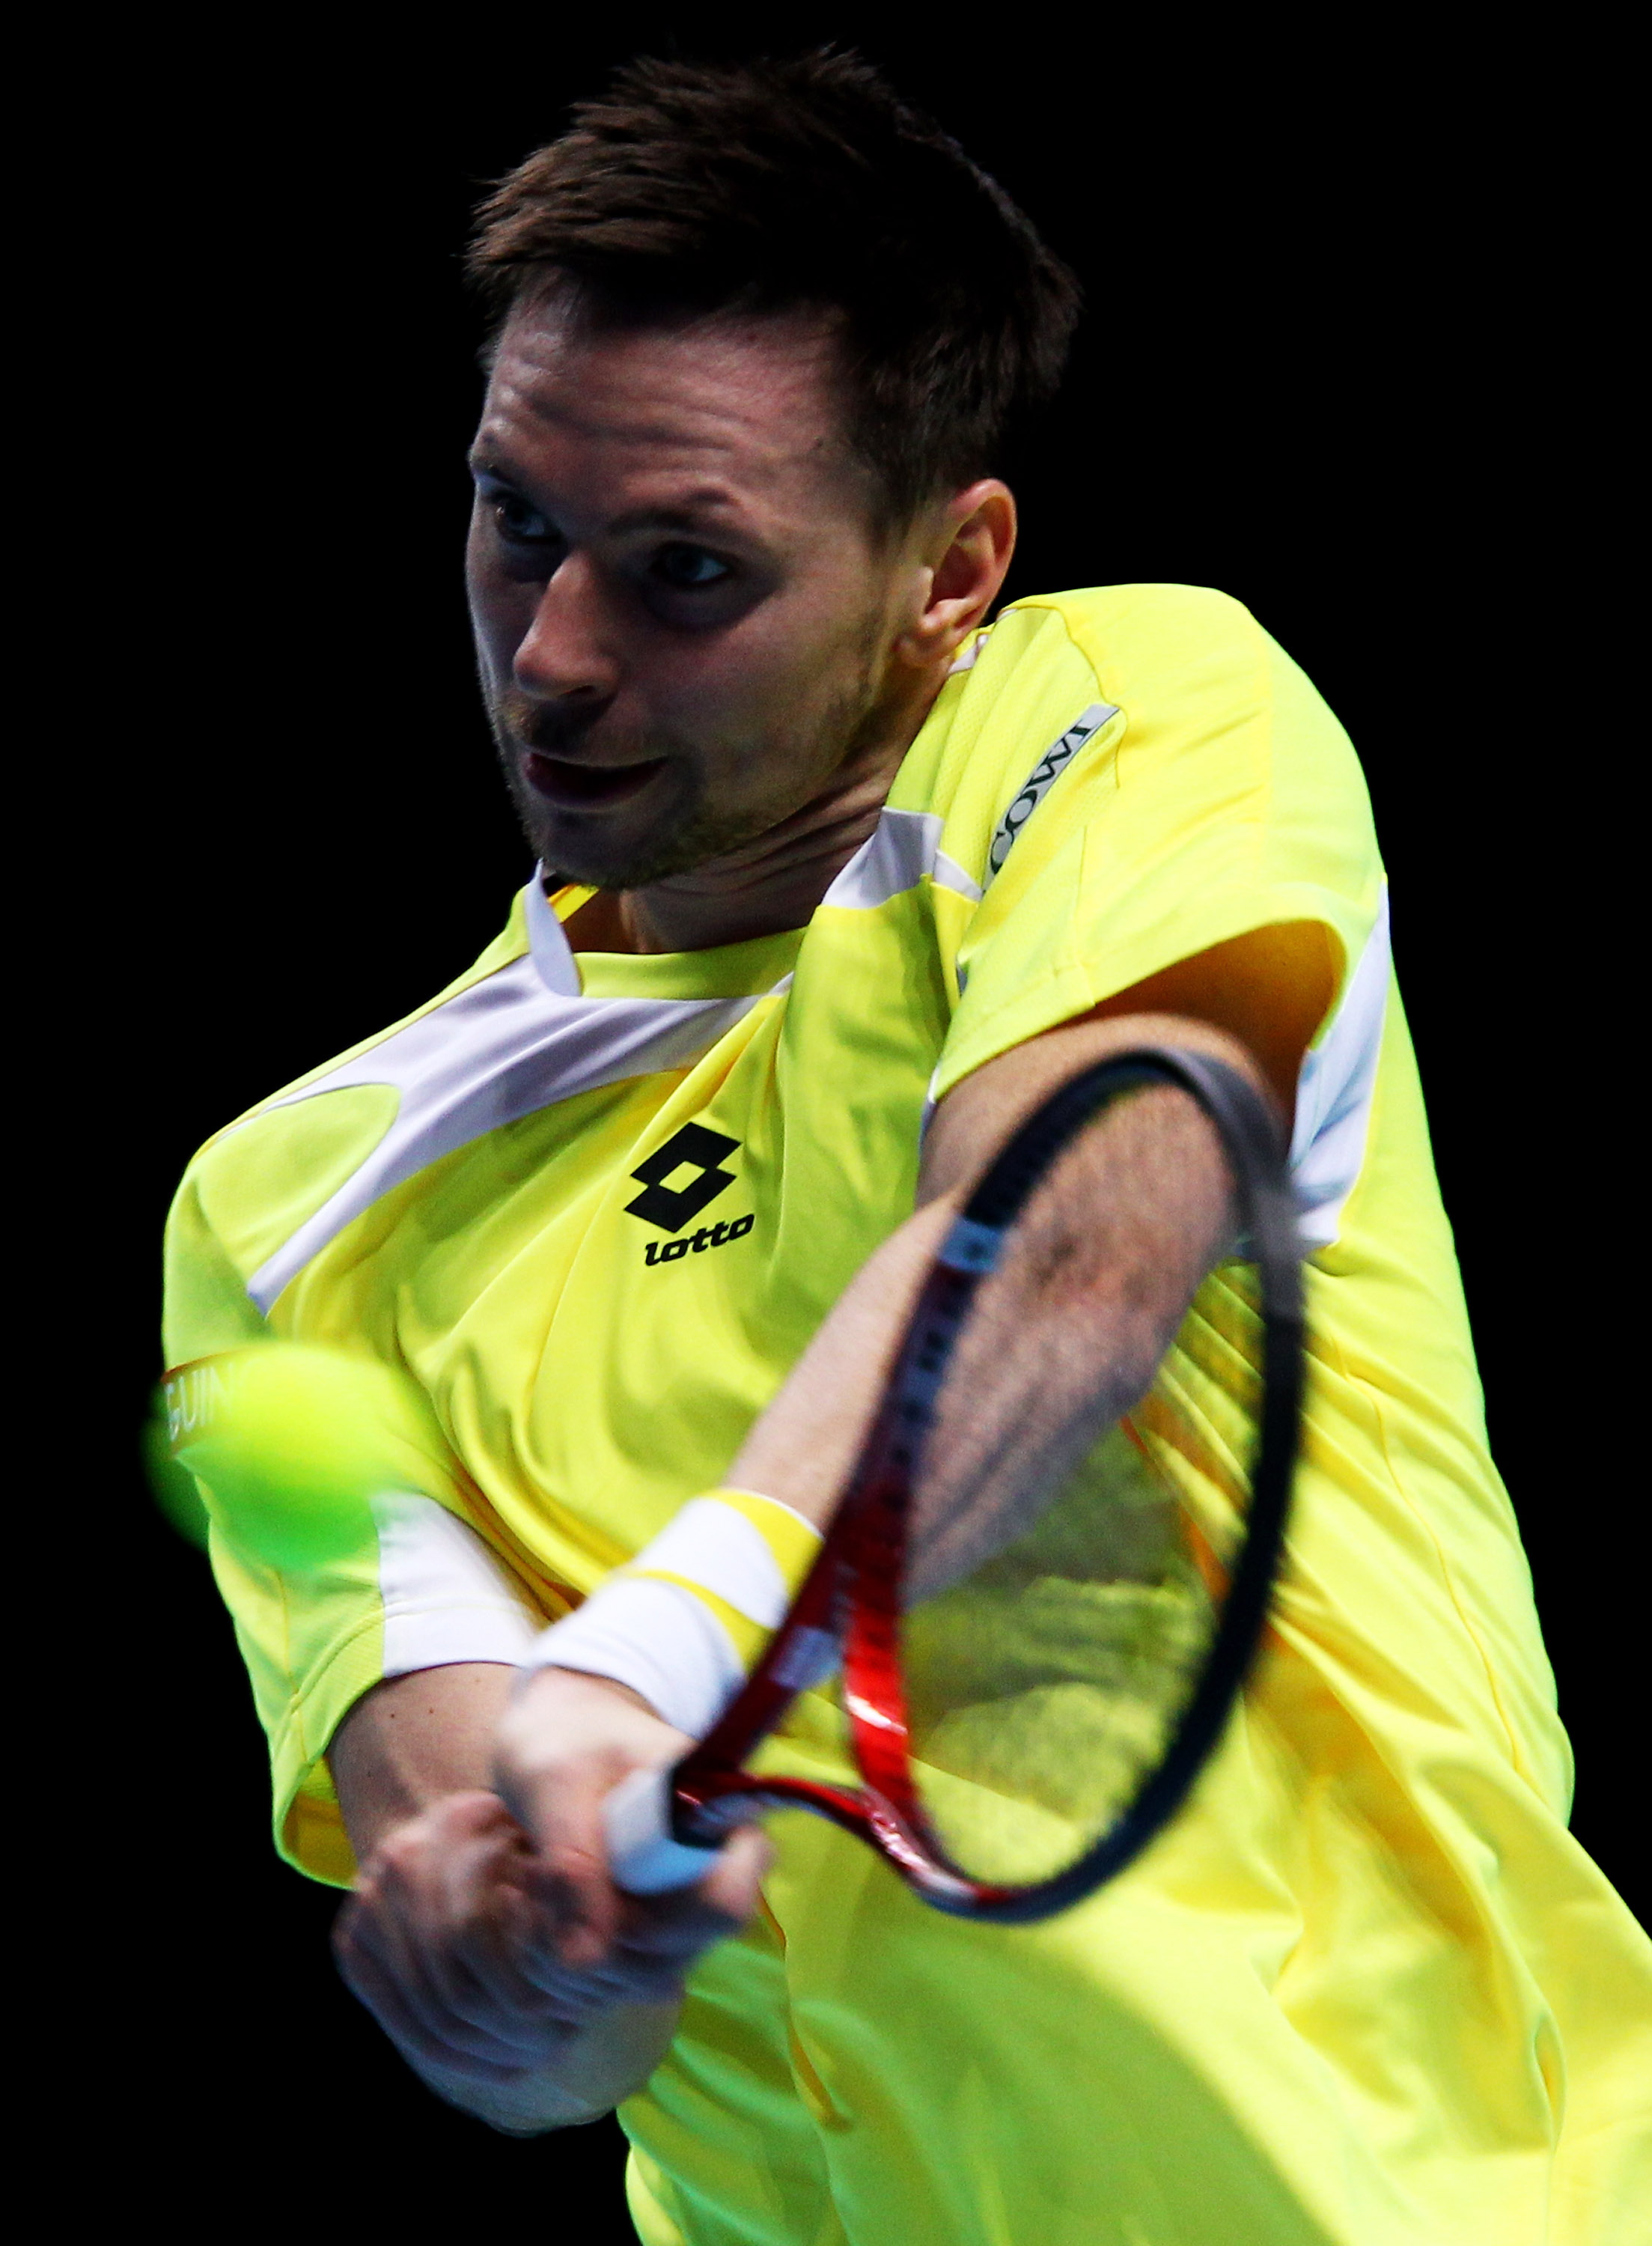 LONDON, ENGLAND - NOVEMBER 25:  Robin Soderling of Sweden returns the ball during his men's singles match during ATP World Tour Finals at O2 Arena on November 25, 2010 in London, England.  (Photo by Clive Brunskill/Getty Images)